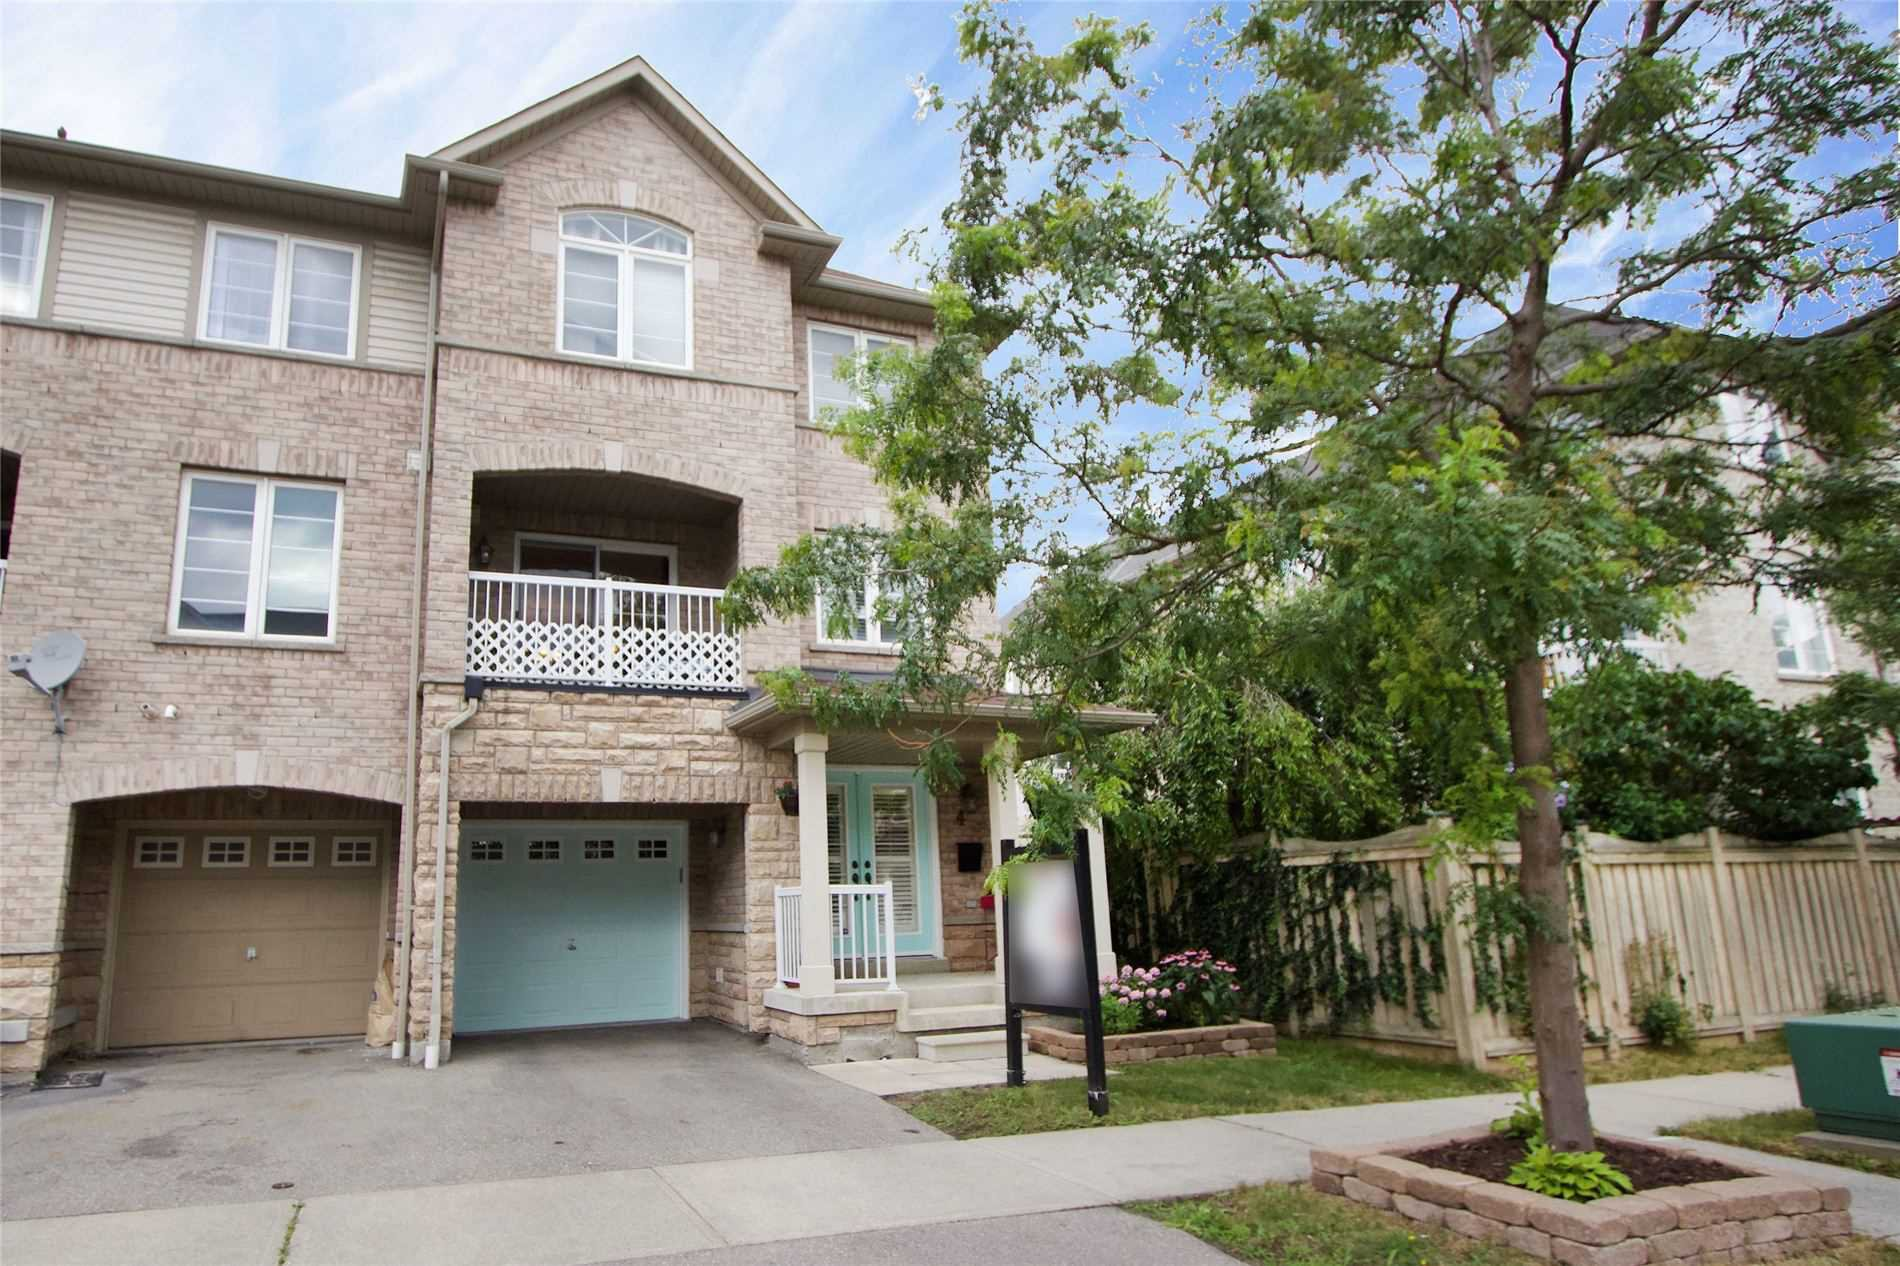 Main Photo: 4 Burnsborough Street in Ajax: South West House (3-Storey) for sale : MLS®# E4851443